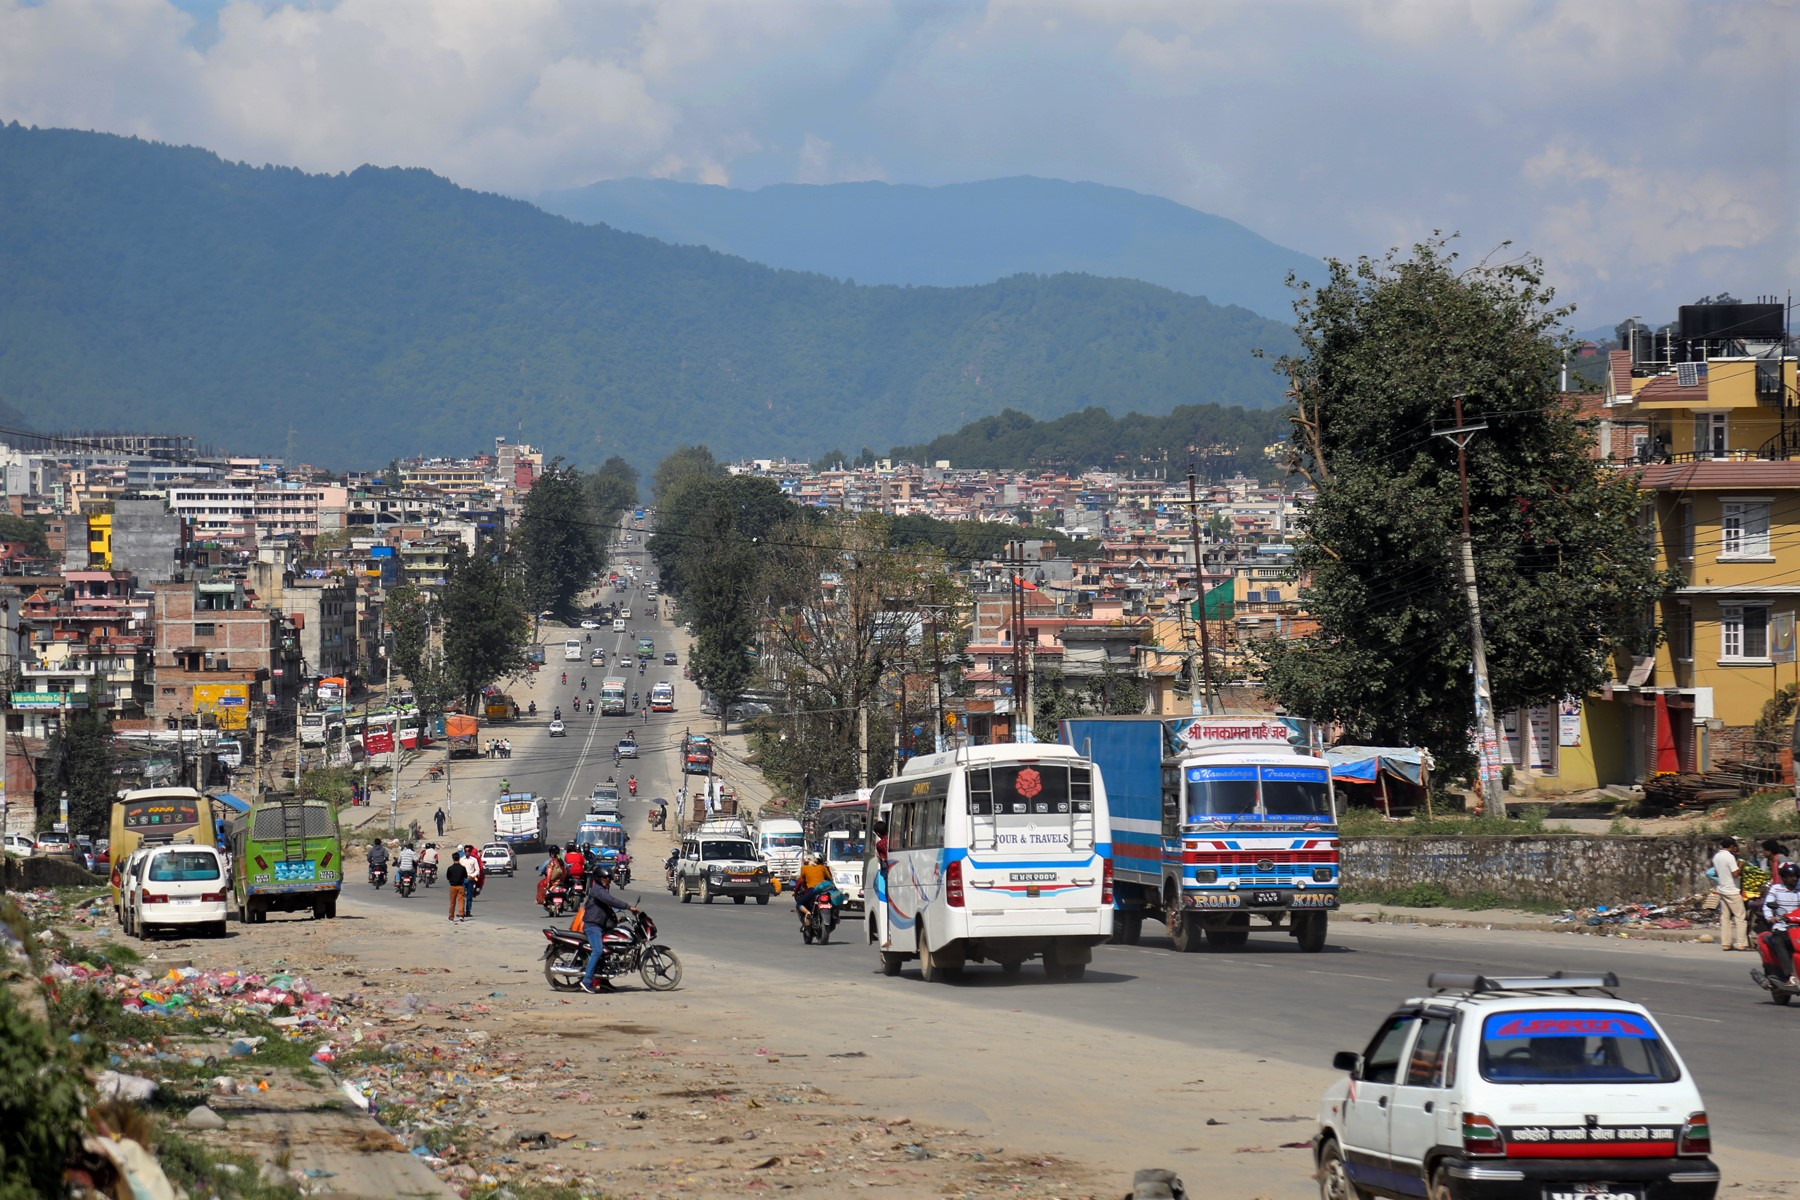 Vehicles ply on the roads in Kalanki of Kathmandu as seen on Thursday, October 13, 2016. Traffic in the capital city had decreased with people going out of the Valley for Dashain festival, but life is returning to normalcy gradually. Photo: RSS